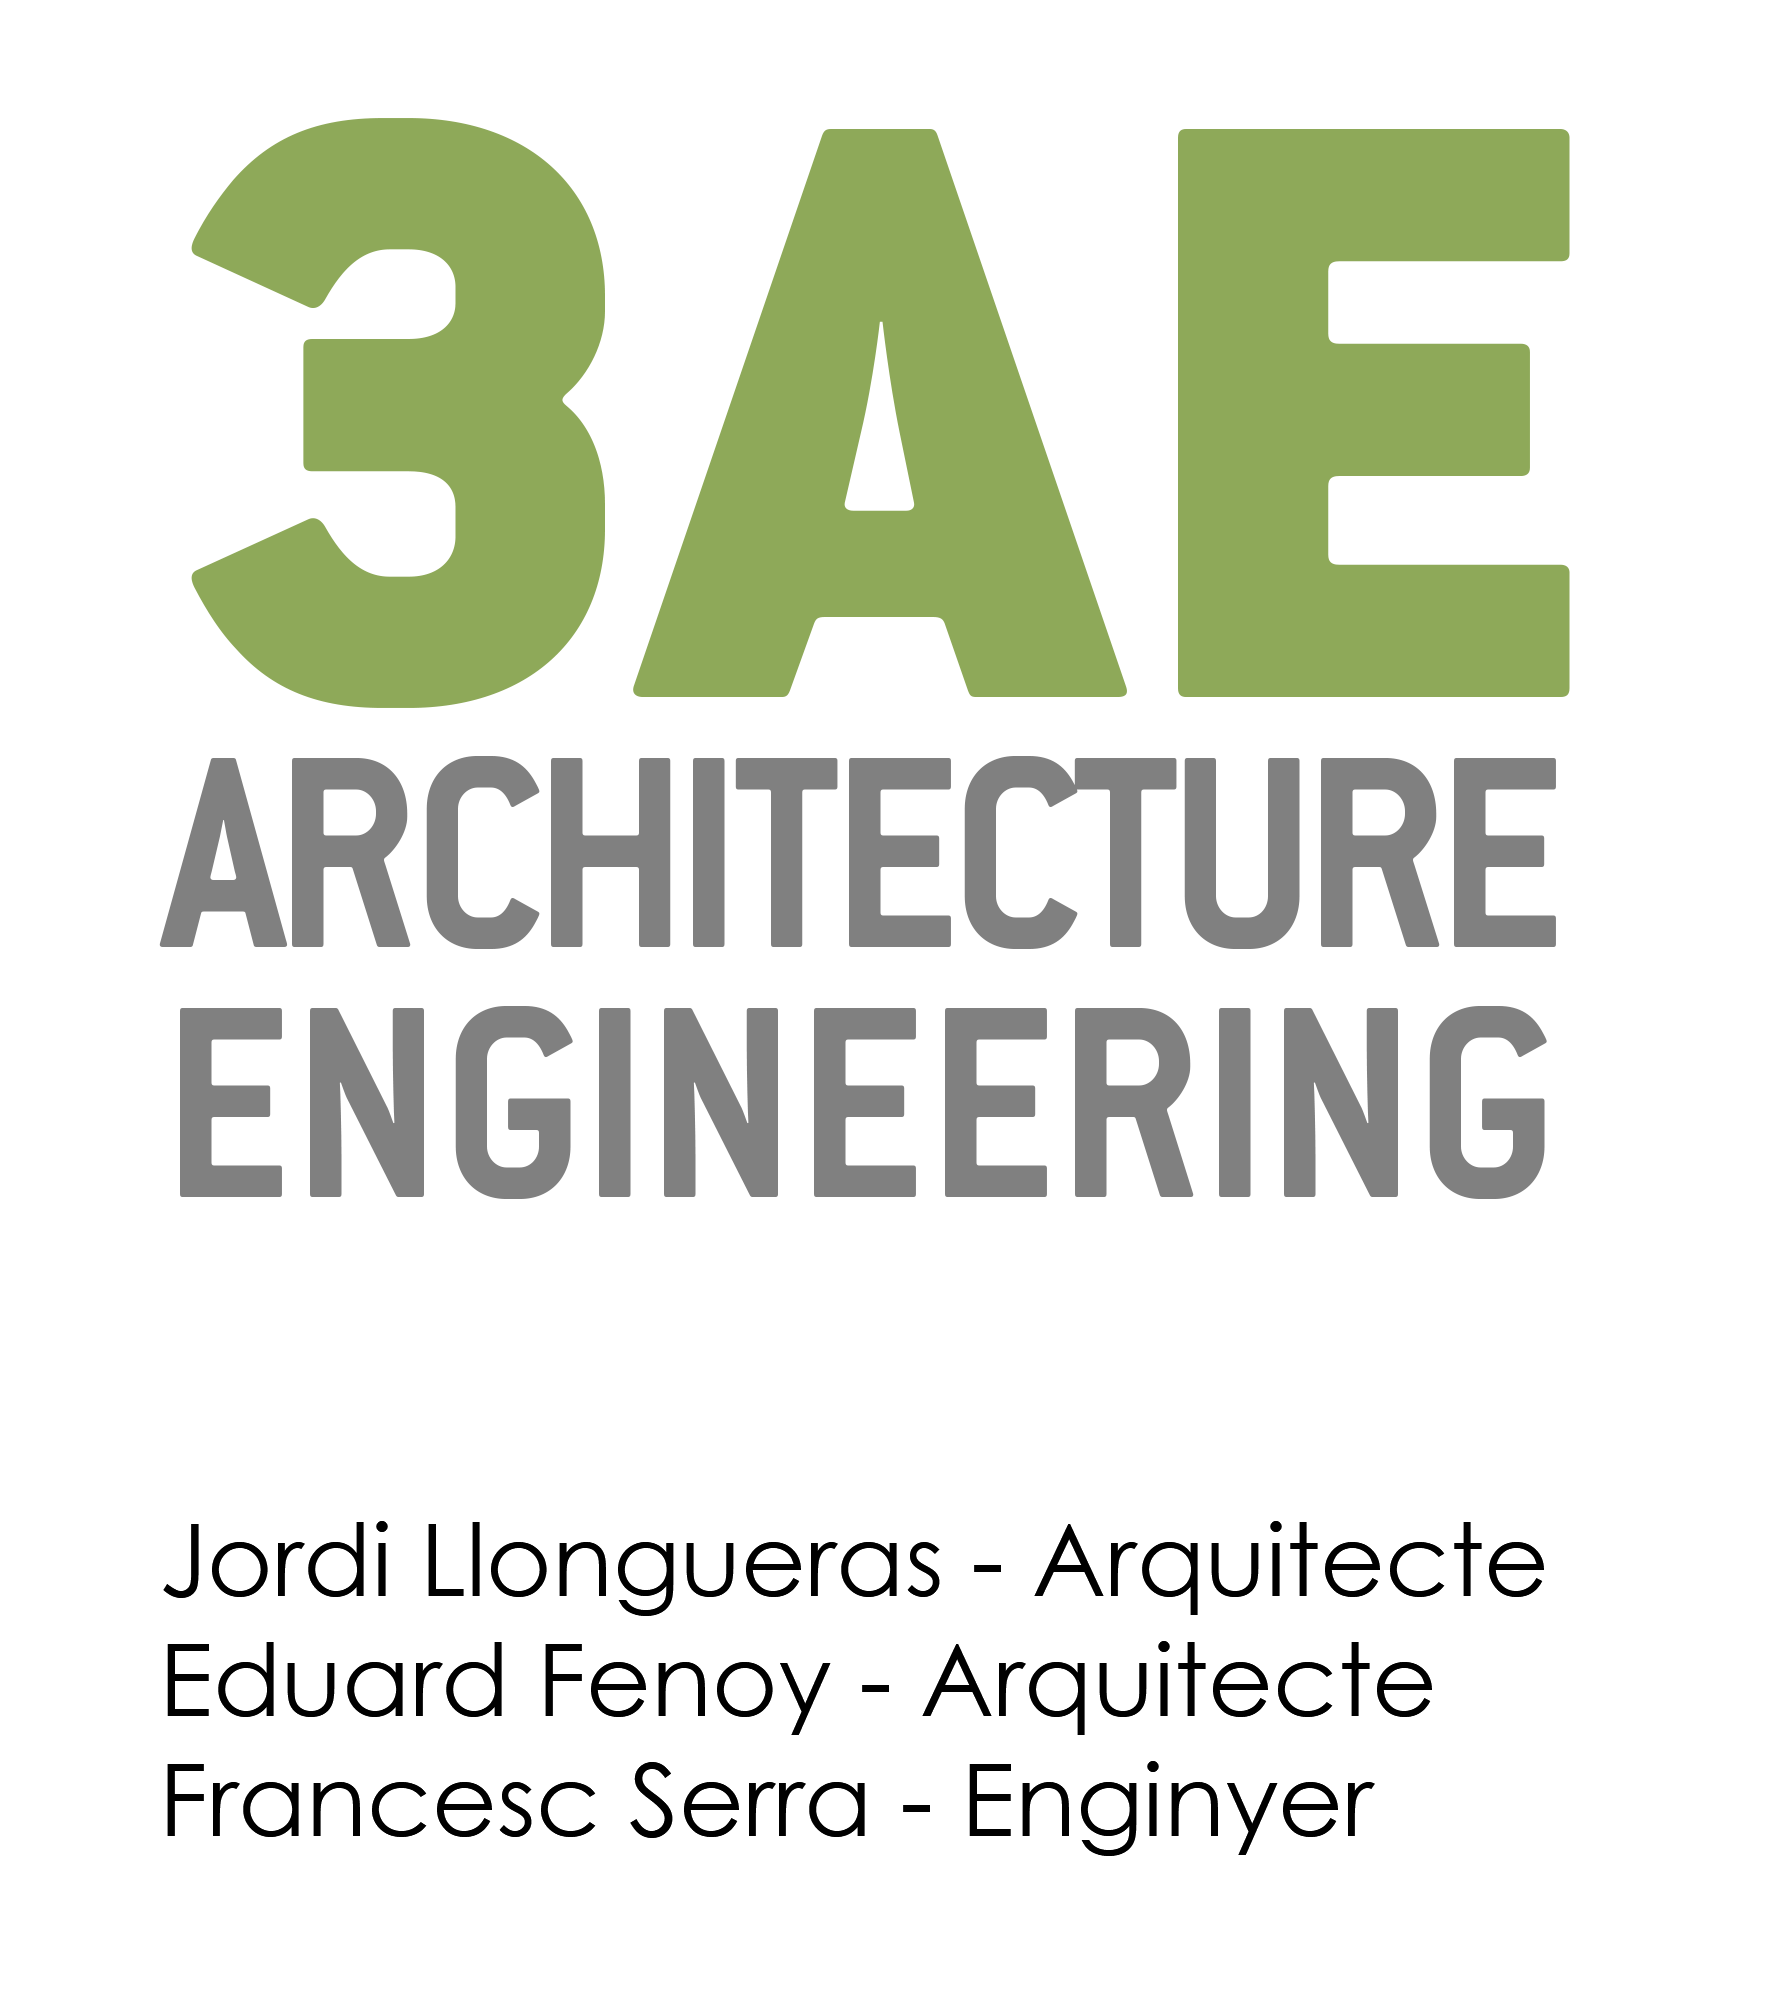 3AE Architecture Engineering